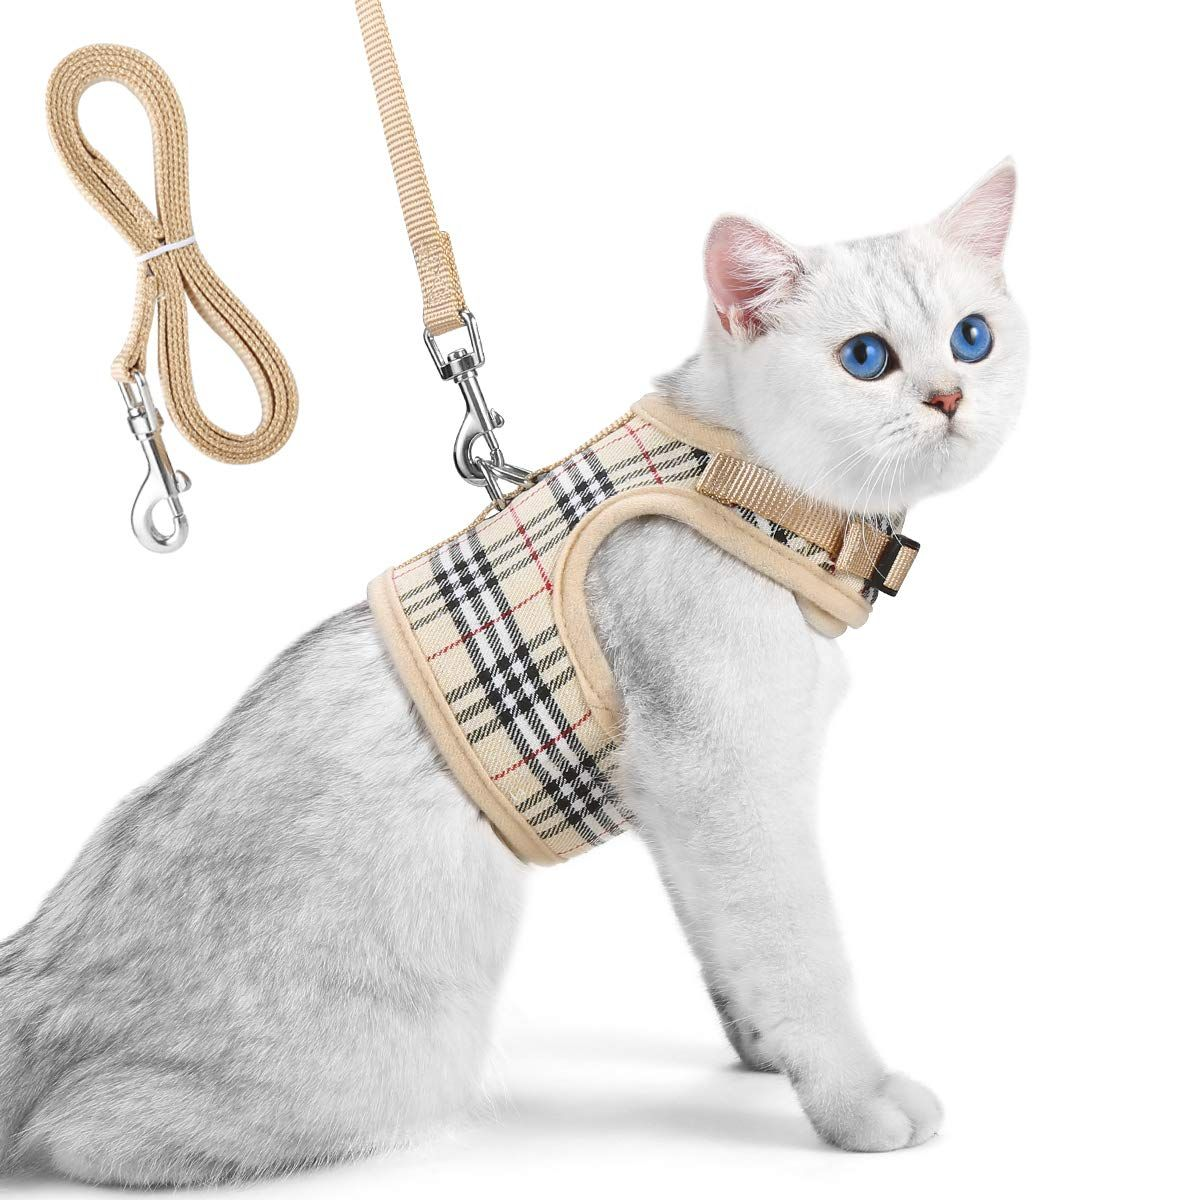 Unihubys Cat Harness With Leash Set Adjustable Soft Mesh Material With Strong D Ring For Peace Of Mind Great For Walking Cat Harness Cat Leash Kitten Harness